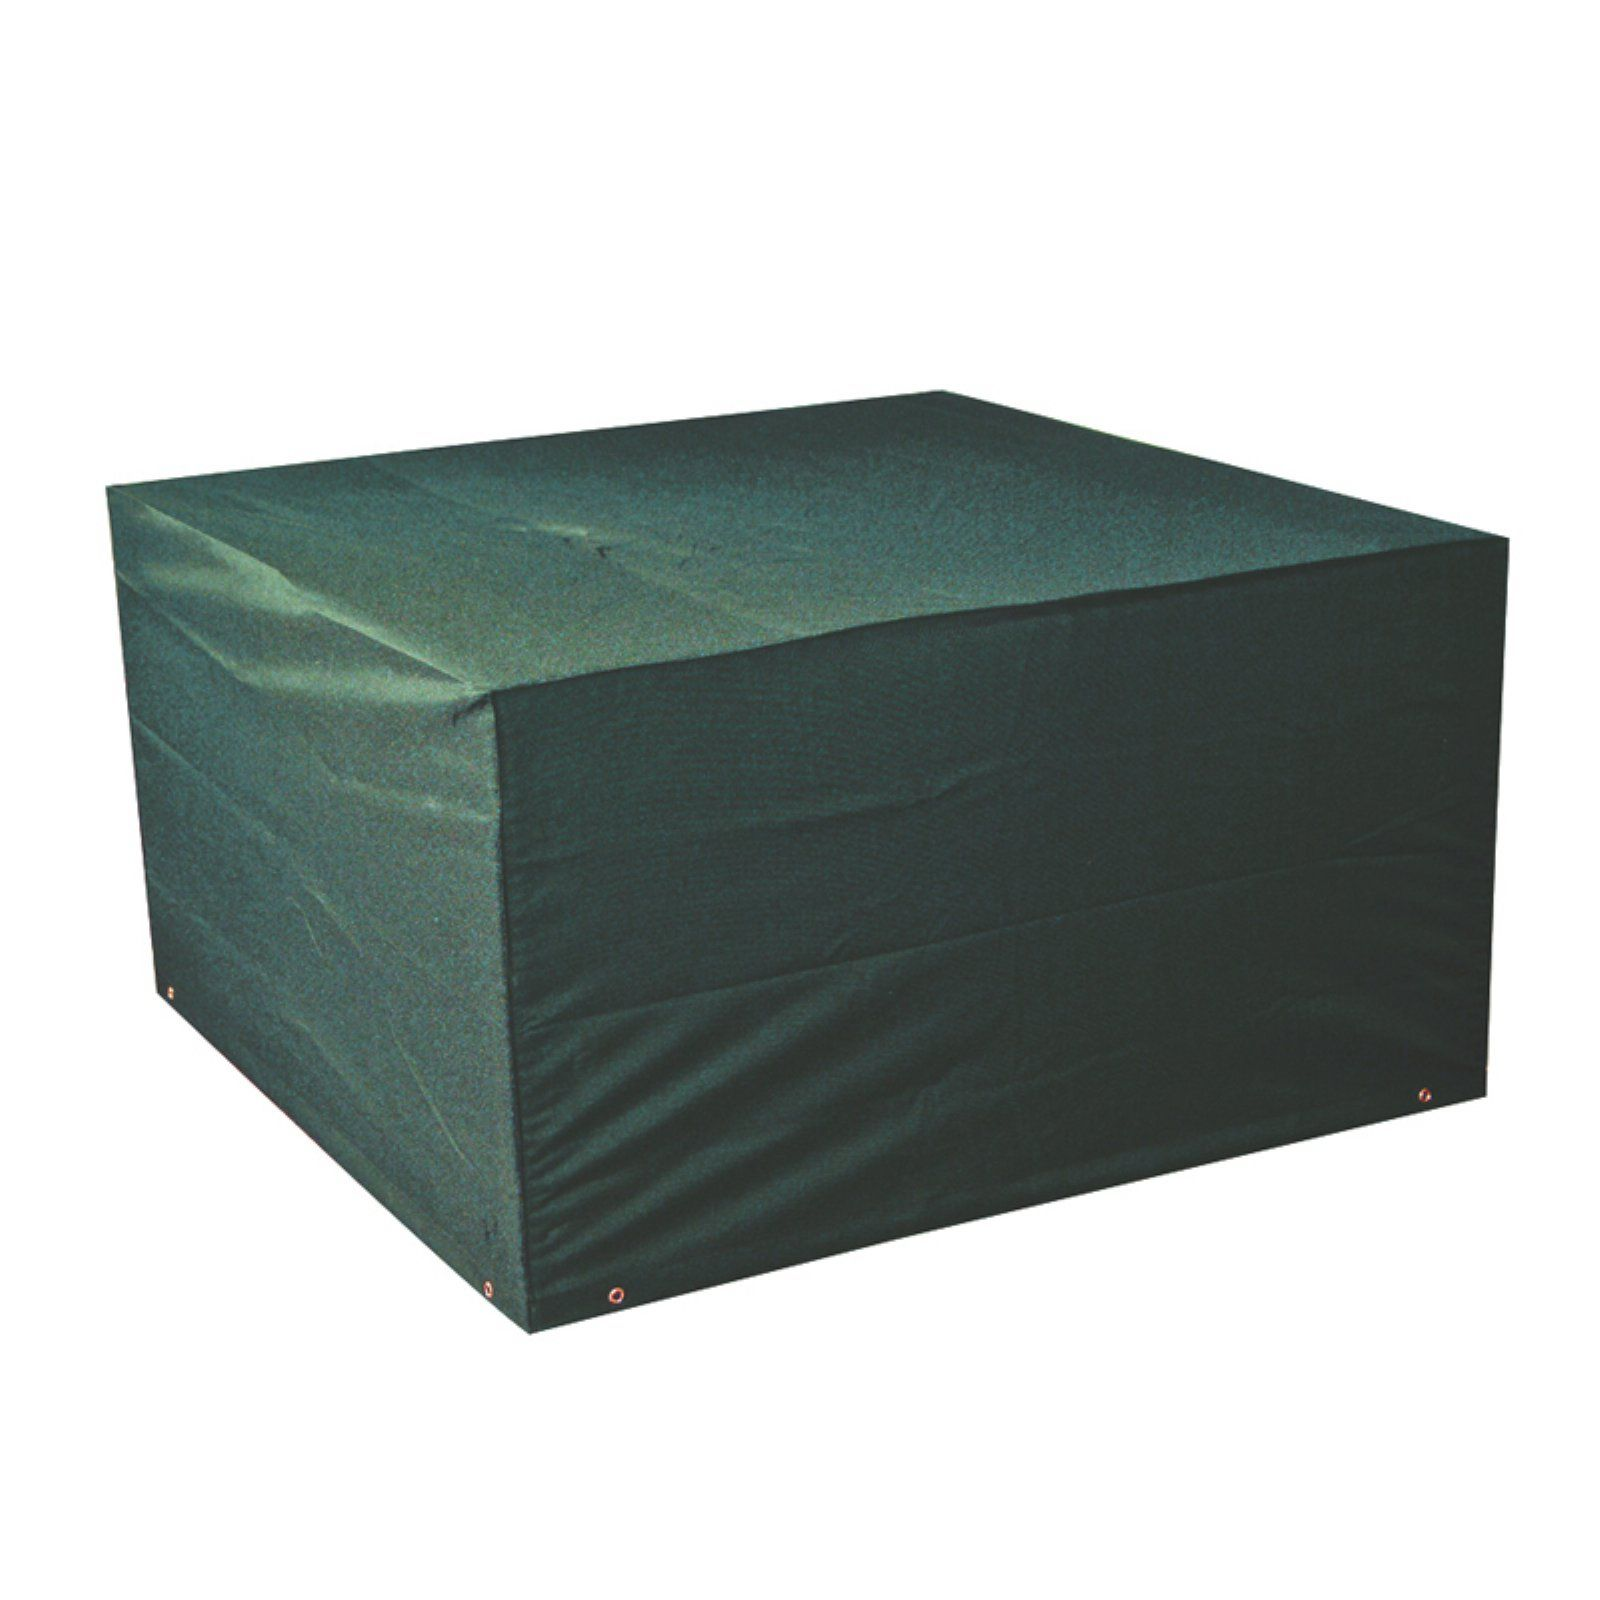 Photo of Bosmere 45 x 45 in. Square Firepit Cover